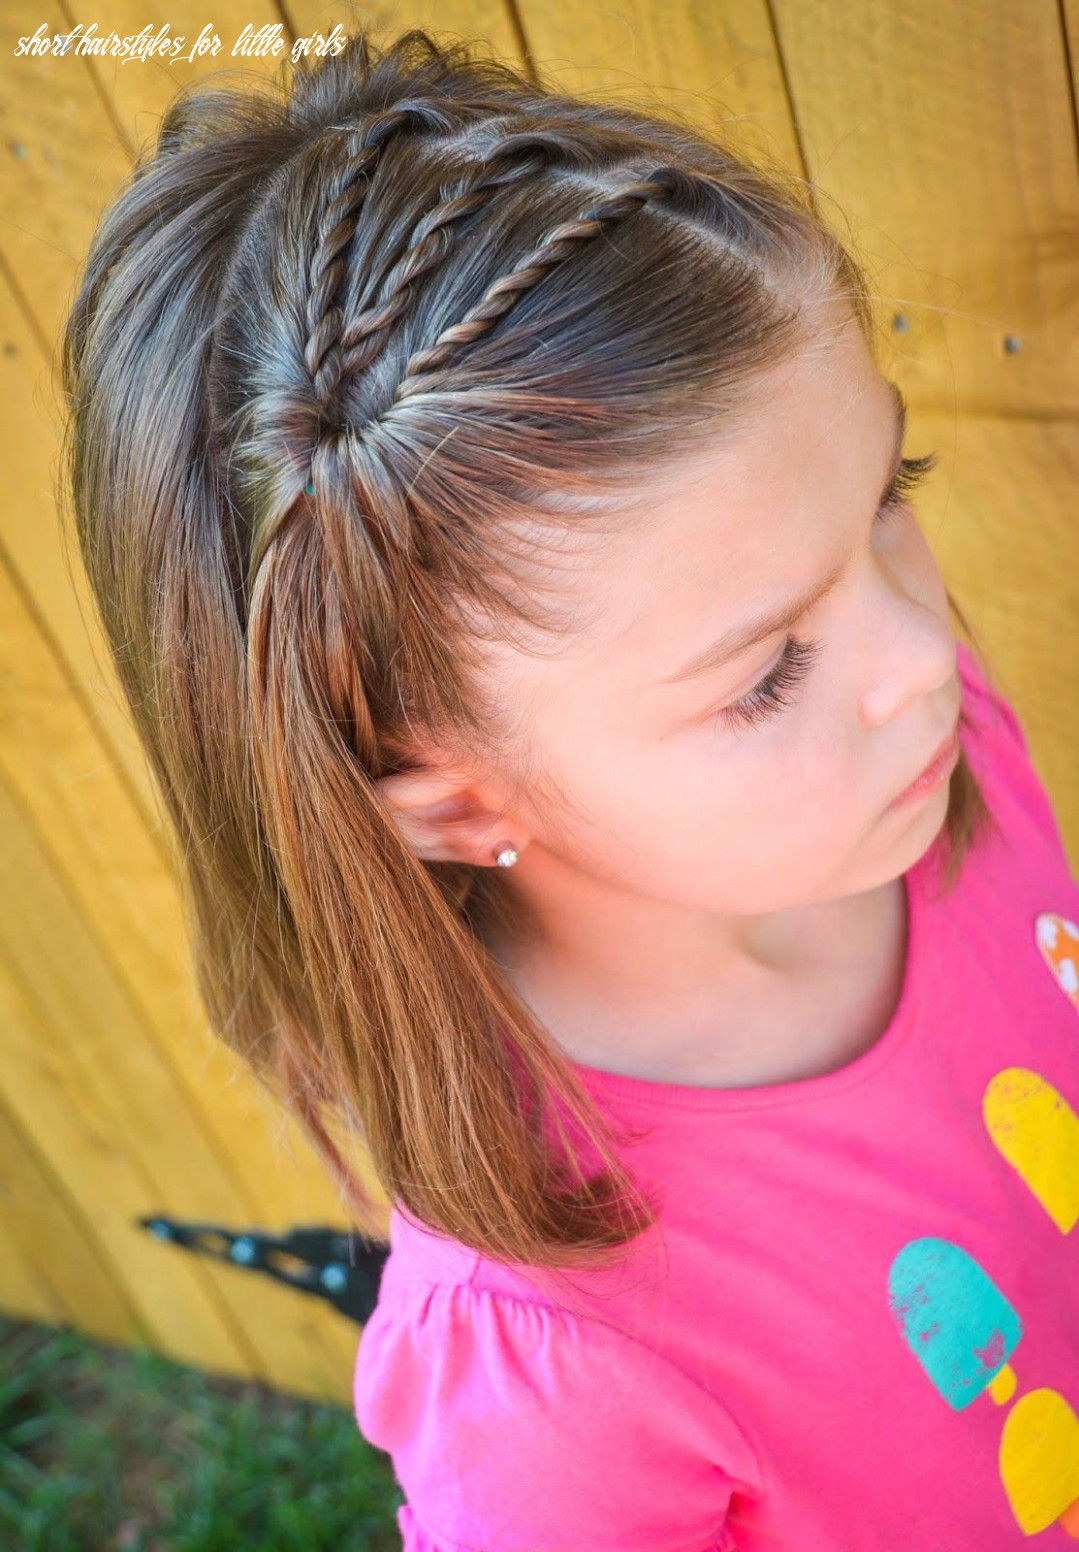 11 Little Girl Hairstyles…you can do YOURSELF! | Kids hairstyles ...